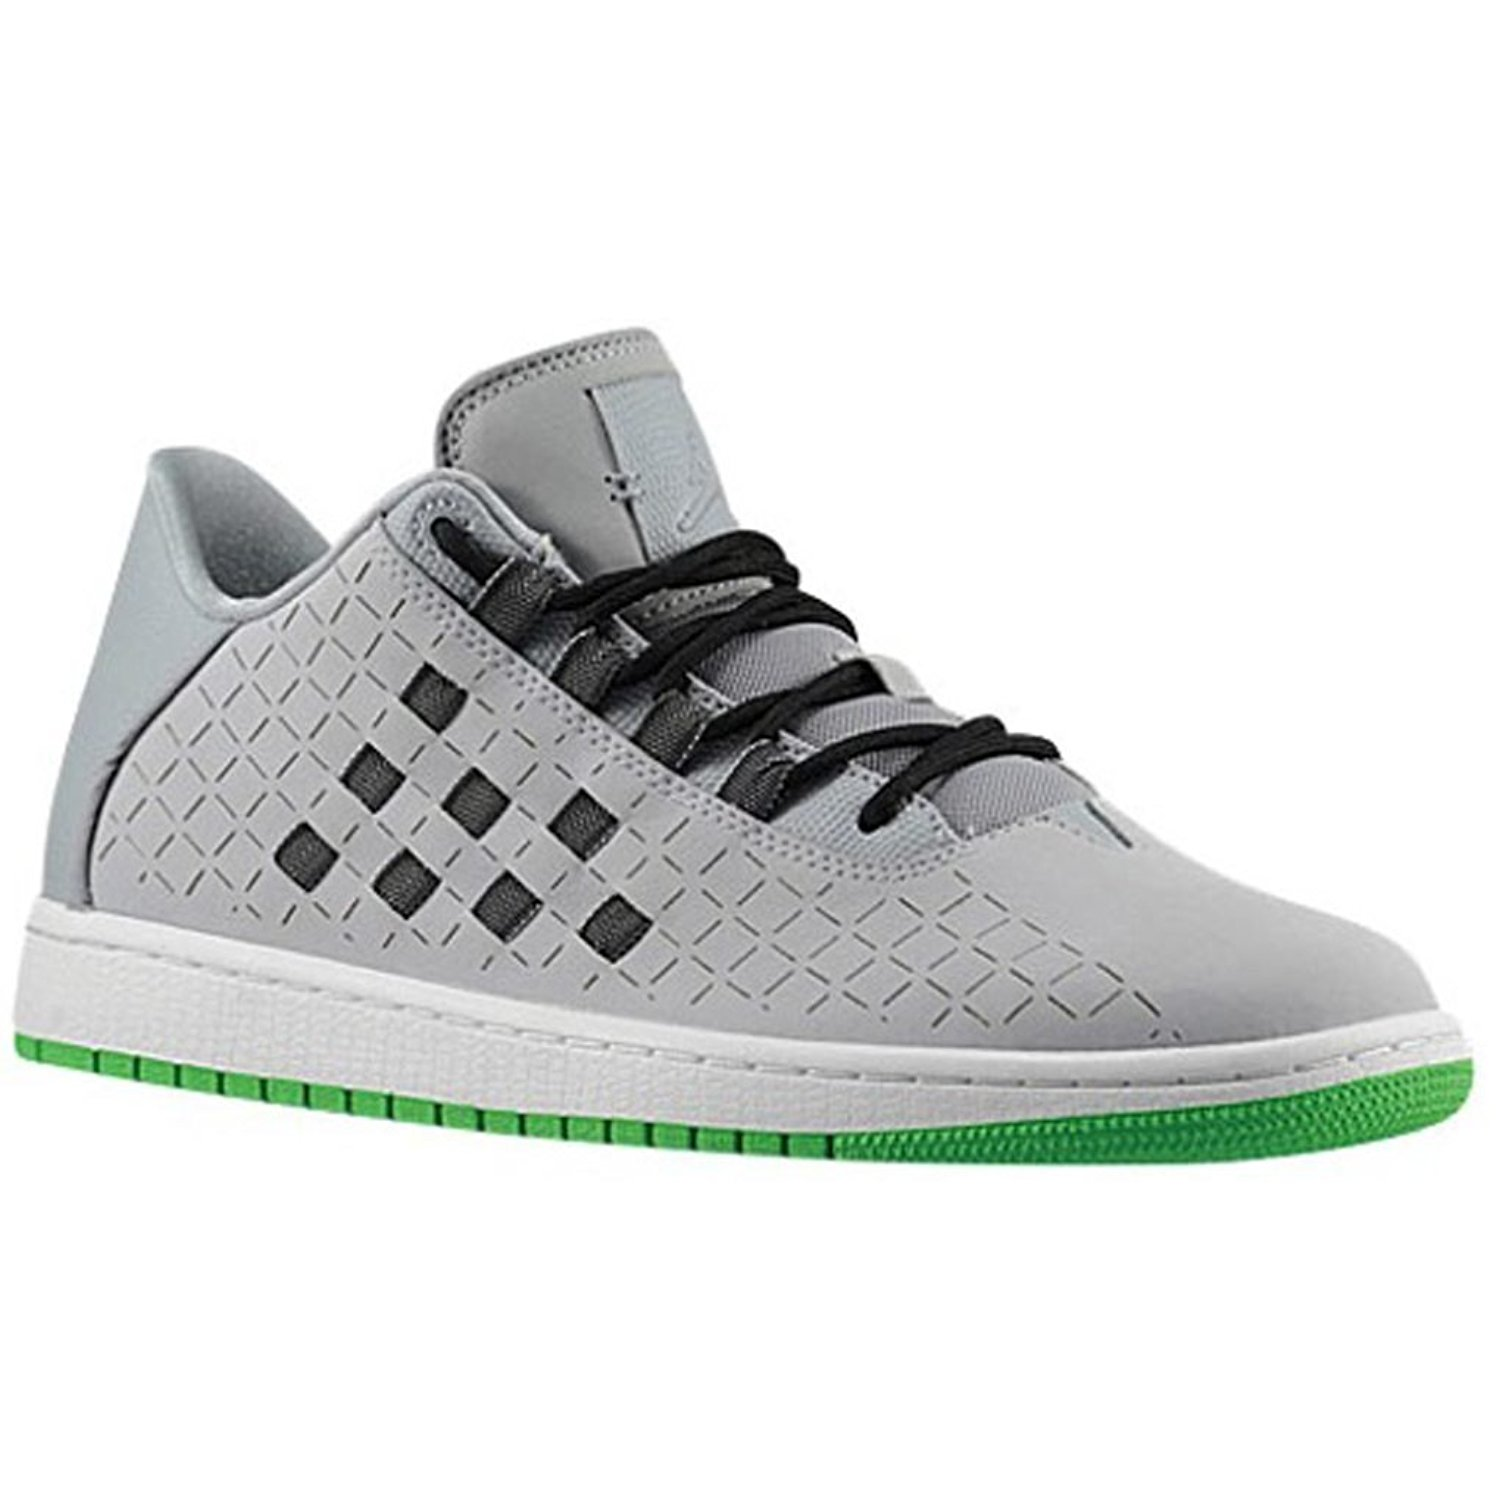 4bc44d289a6 Cheap Low Jordan Shoes, find Low Jordan Shoes deals on line at ...